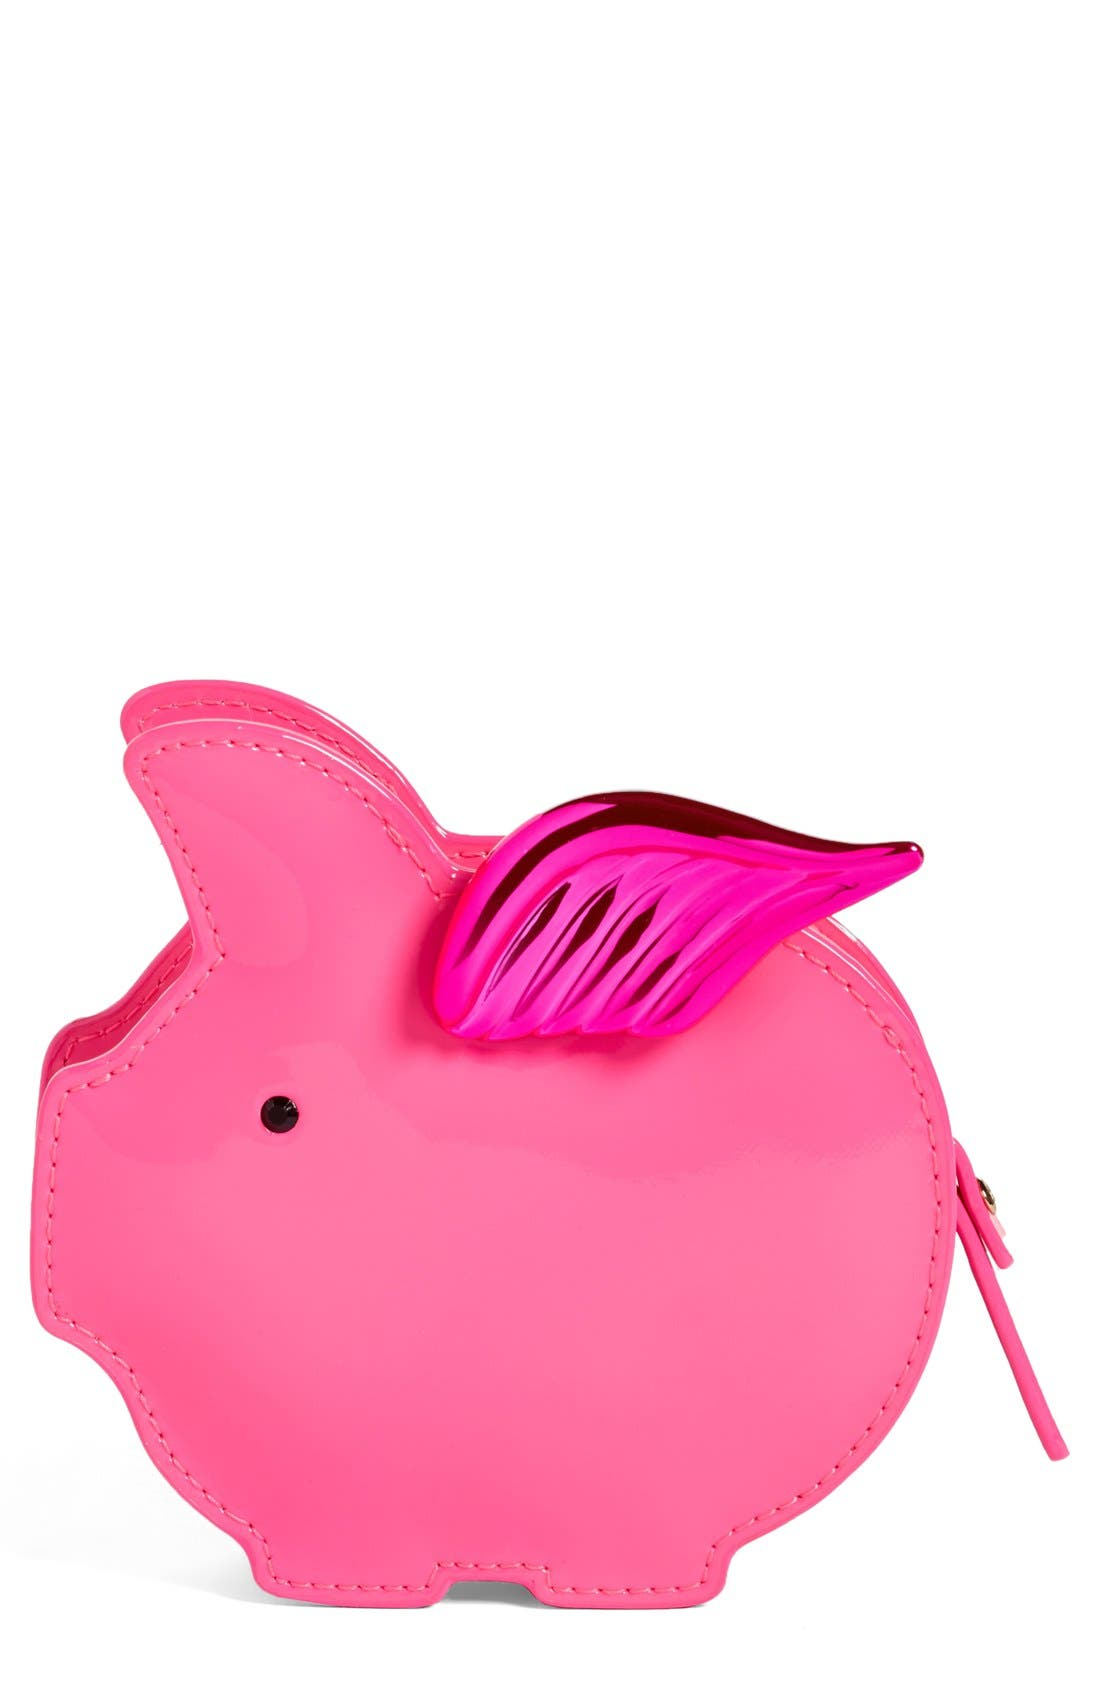 Main Image - kate spade new york flying pig coin purse